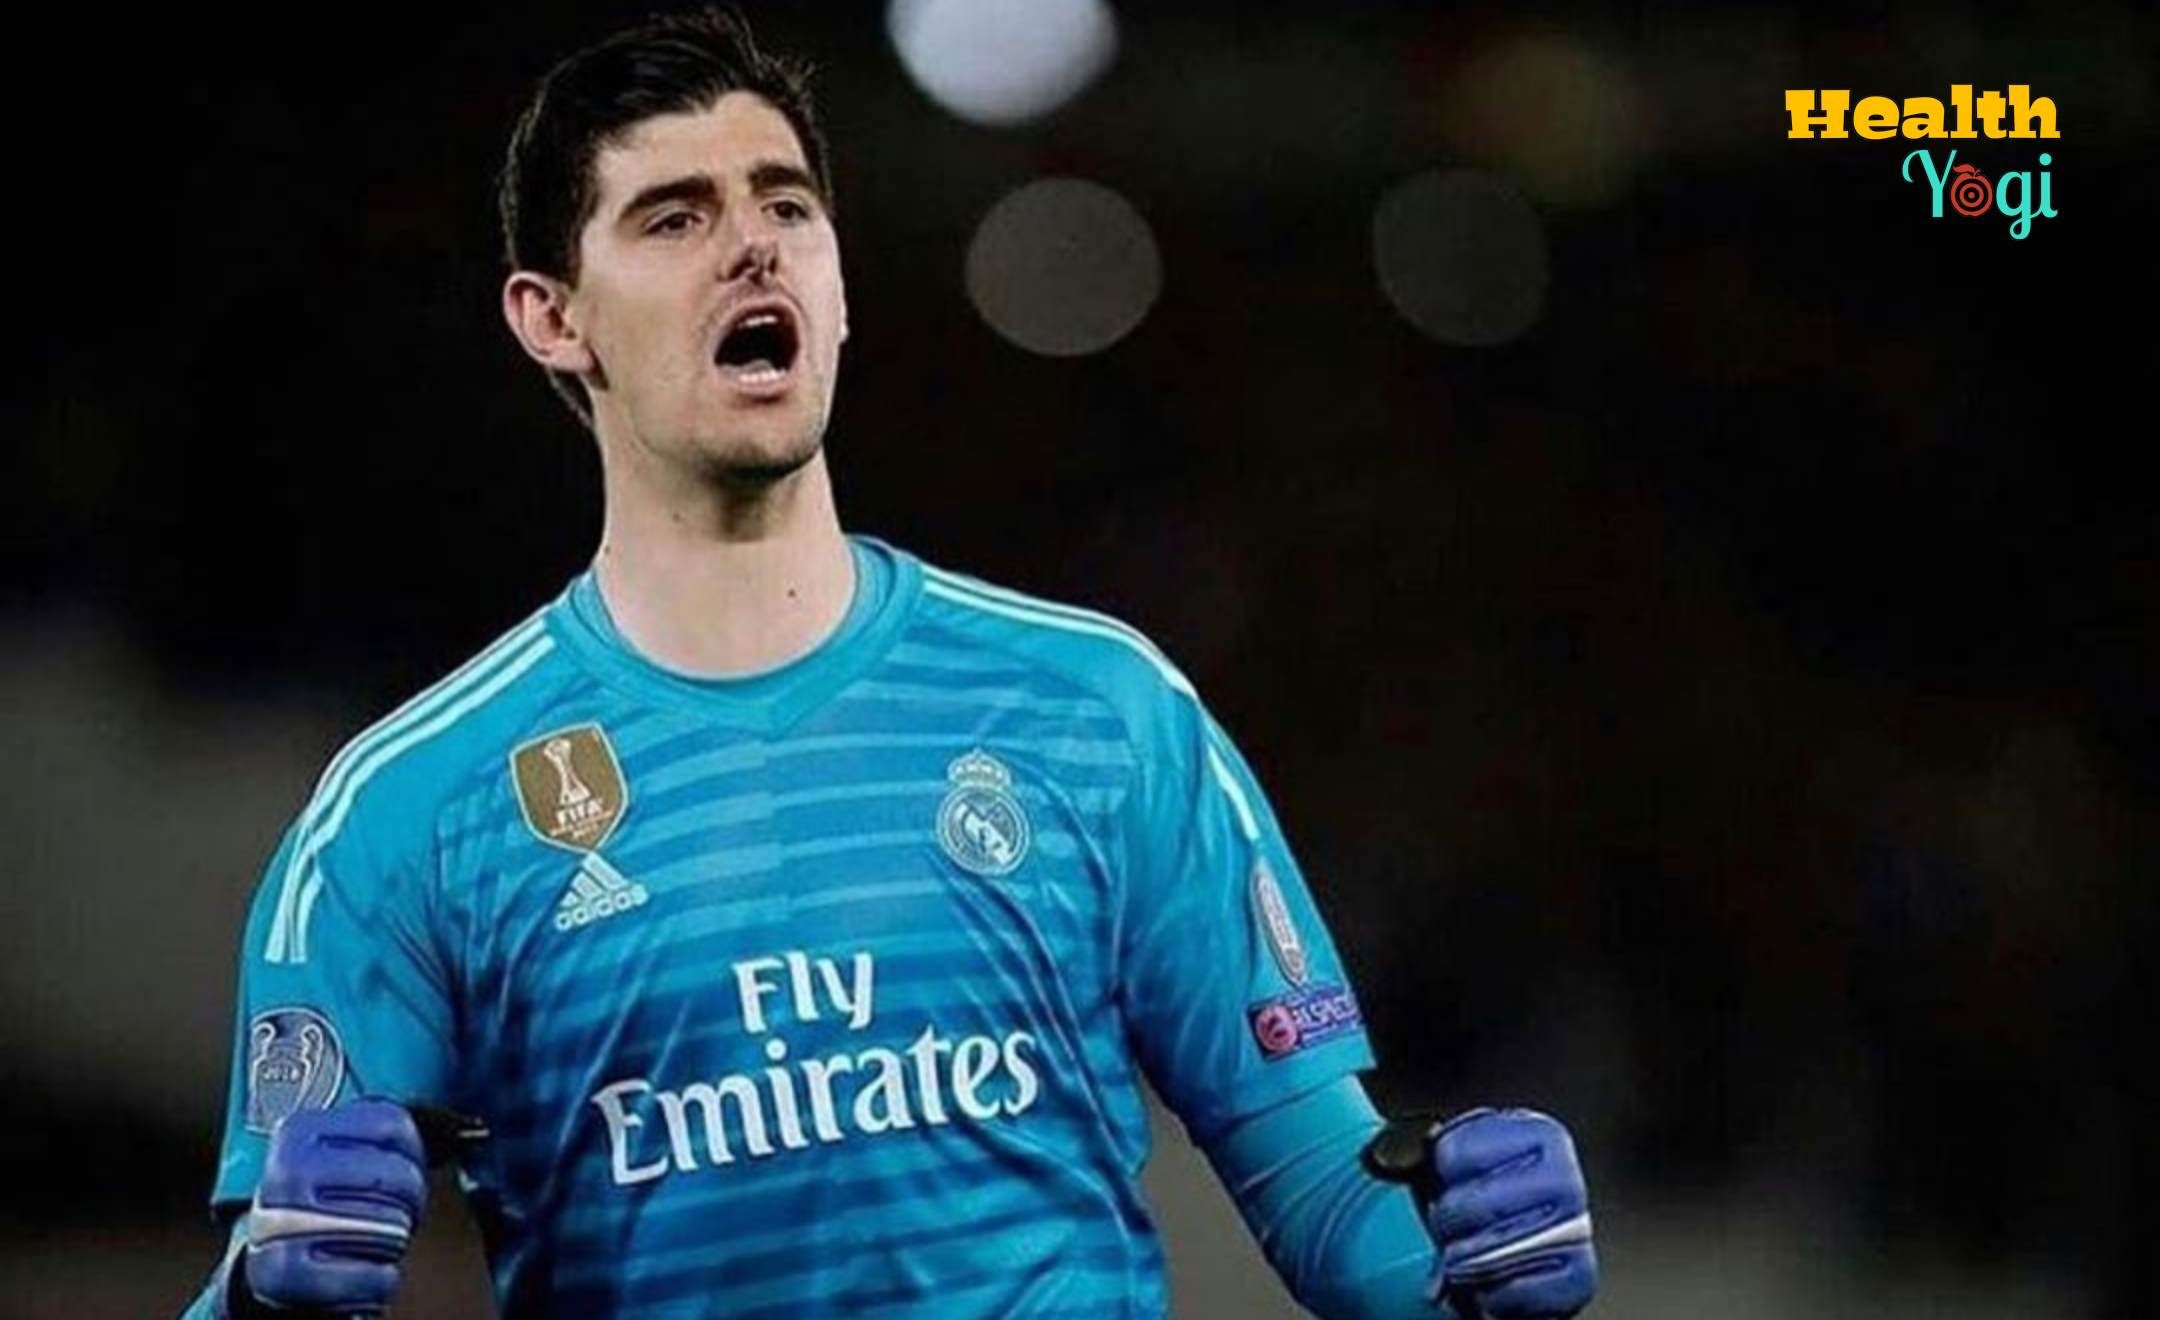 Thibaut Courtois Workout Routine And Diet Plan